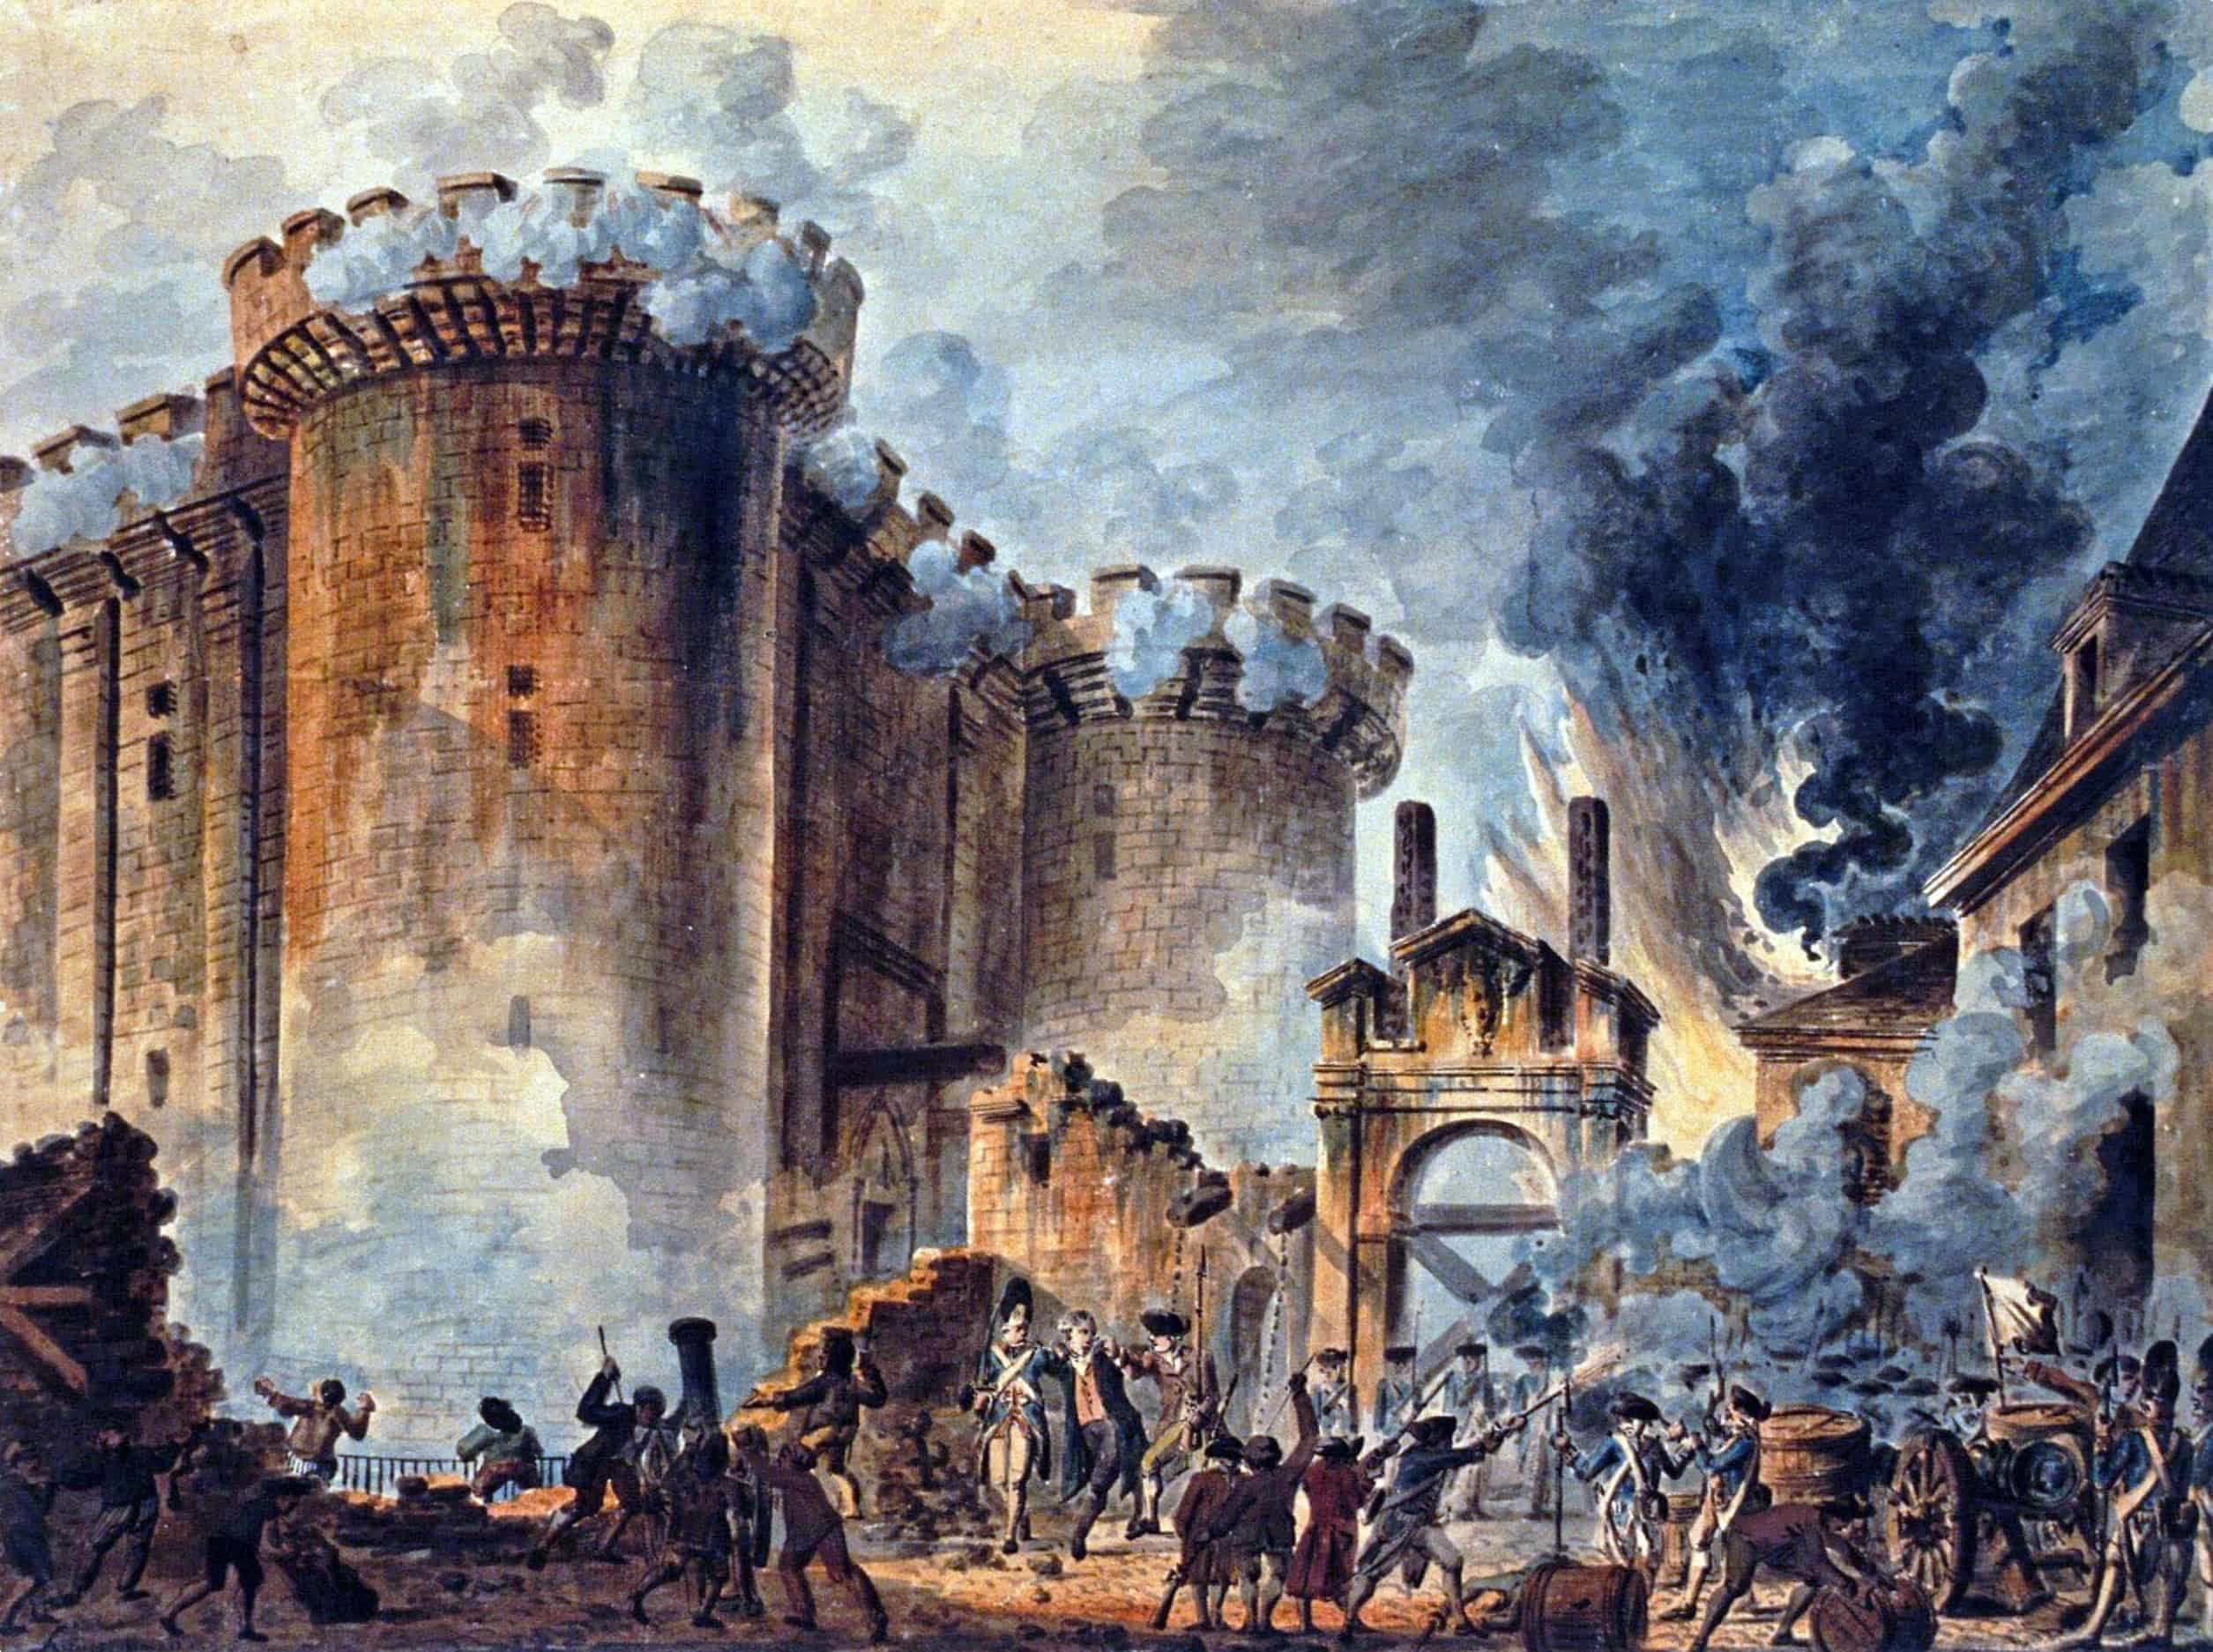 The Storming of the Bastille which took place in Paris, France on July 14, 1789.